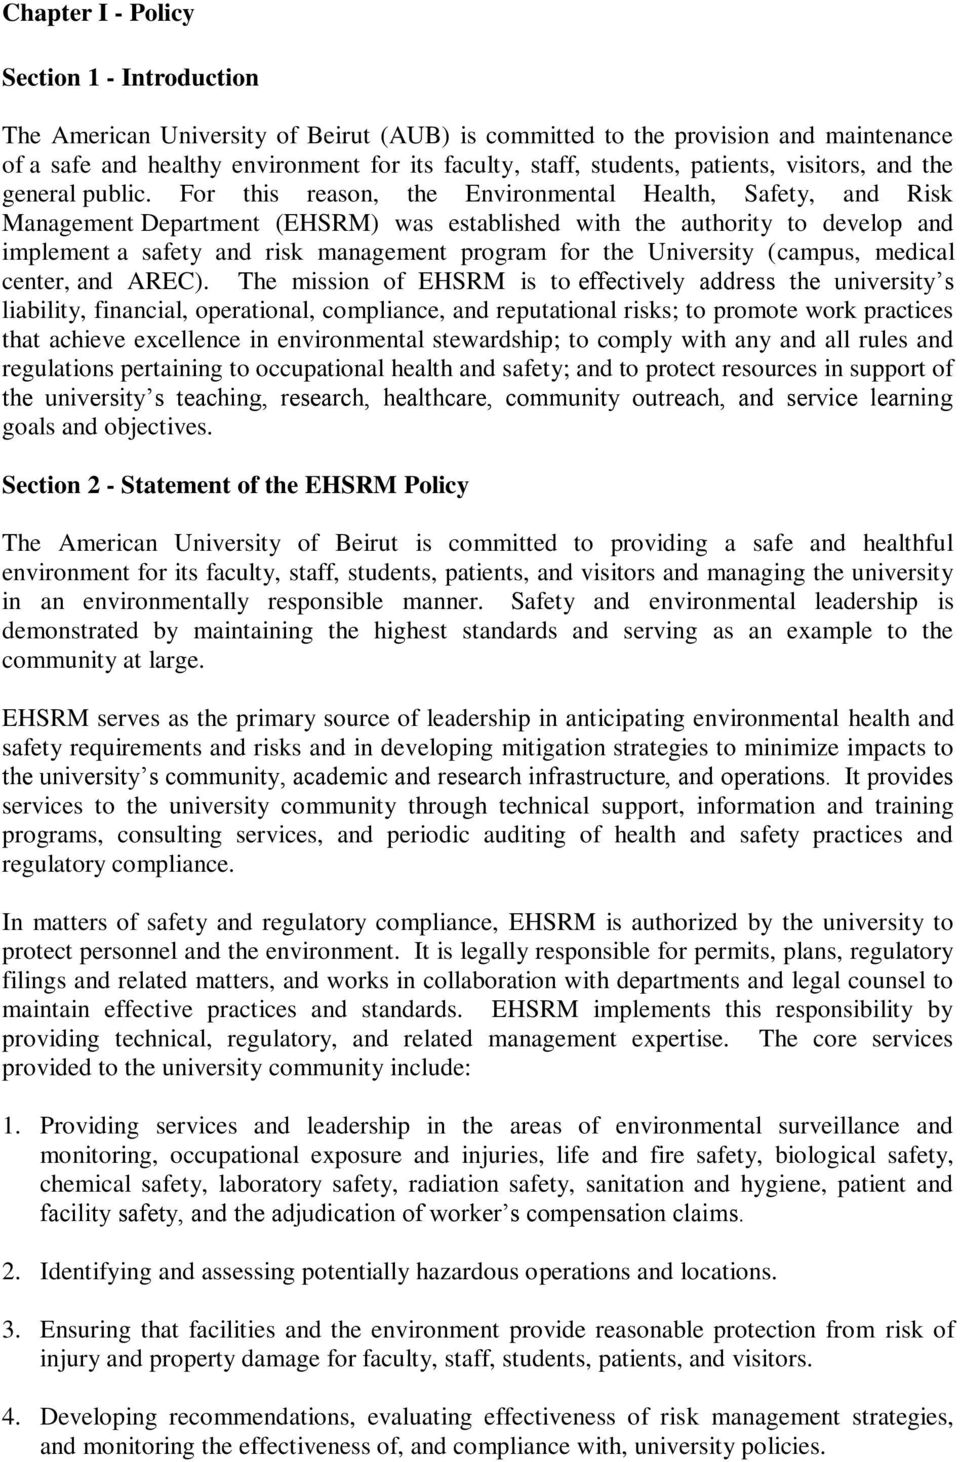 For this reason, the Environmental Health, Safety, and Risk Management Department (EHSRM) was established with the authority to develop and implement a safety and risk management program for the